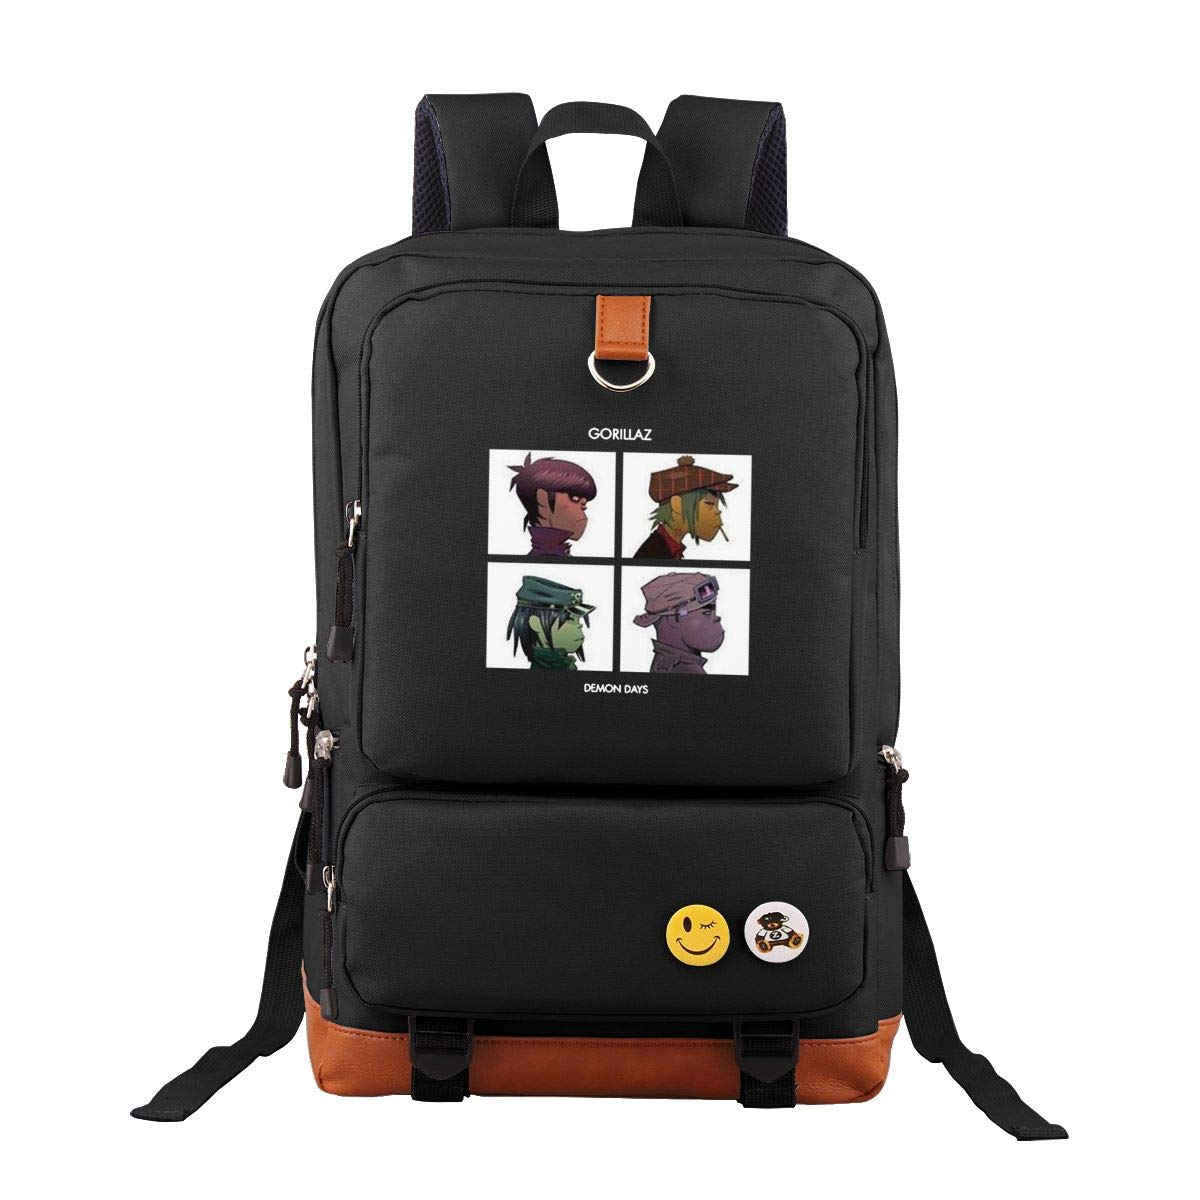 c24f7c56a804 Amazon.com | GORILLAZ DEMON DAYS Classic School Student Backpack ...